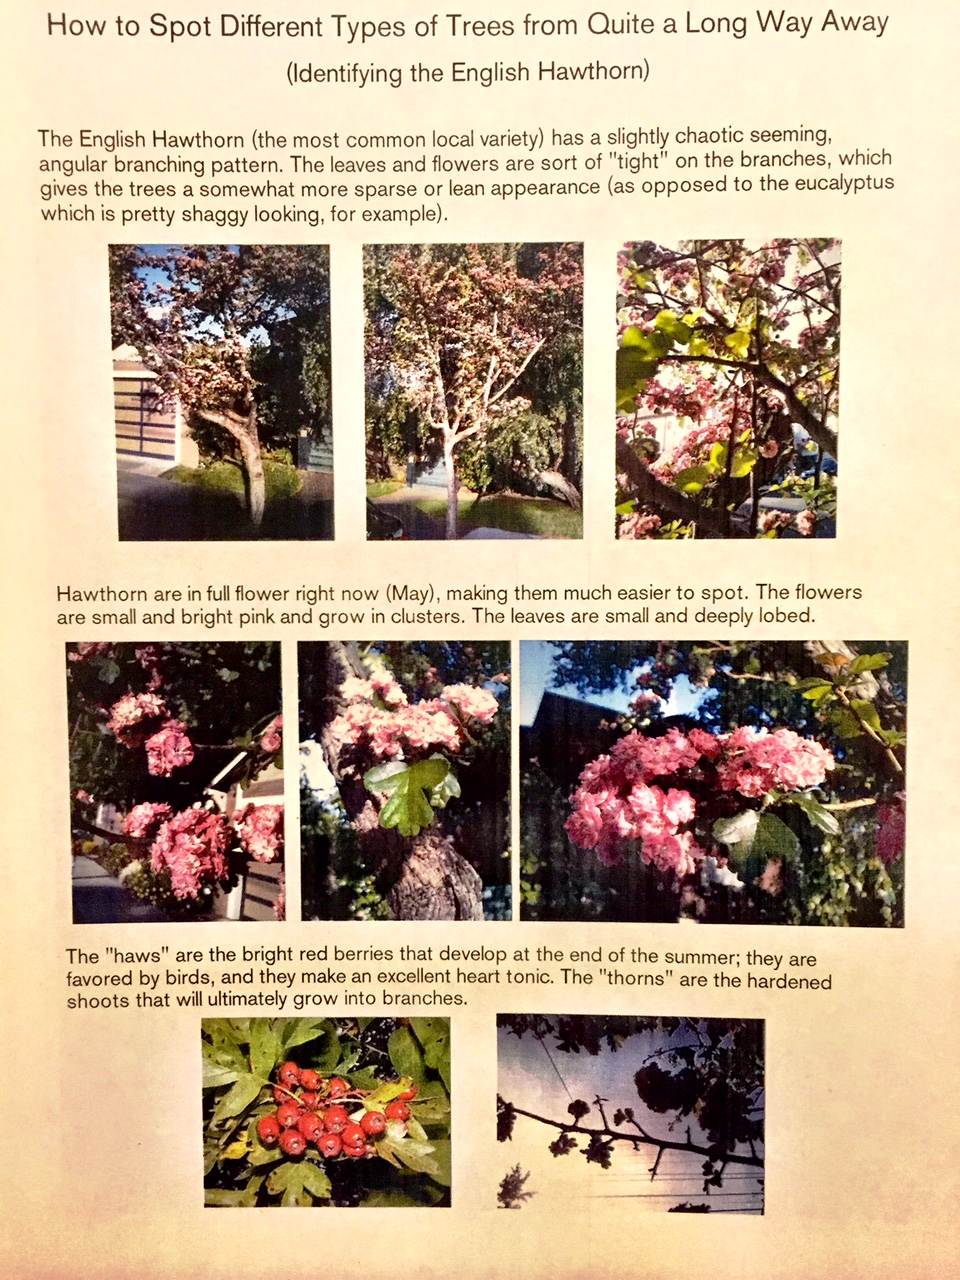 How to Spot Different Types of Trees From Quite a Long Way Away: Hawthorn Edition